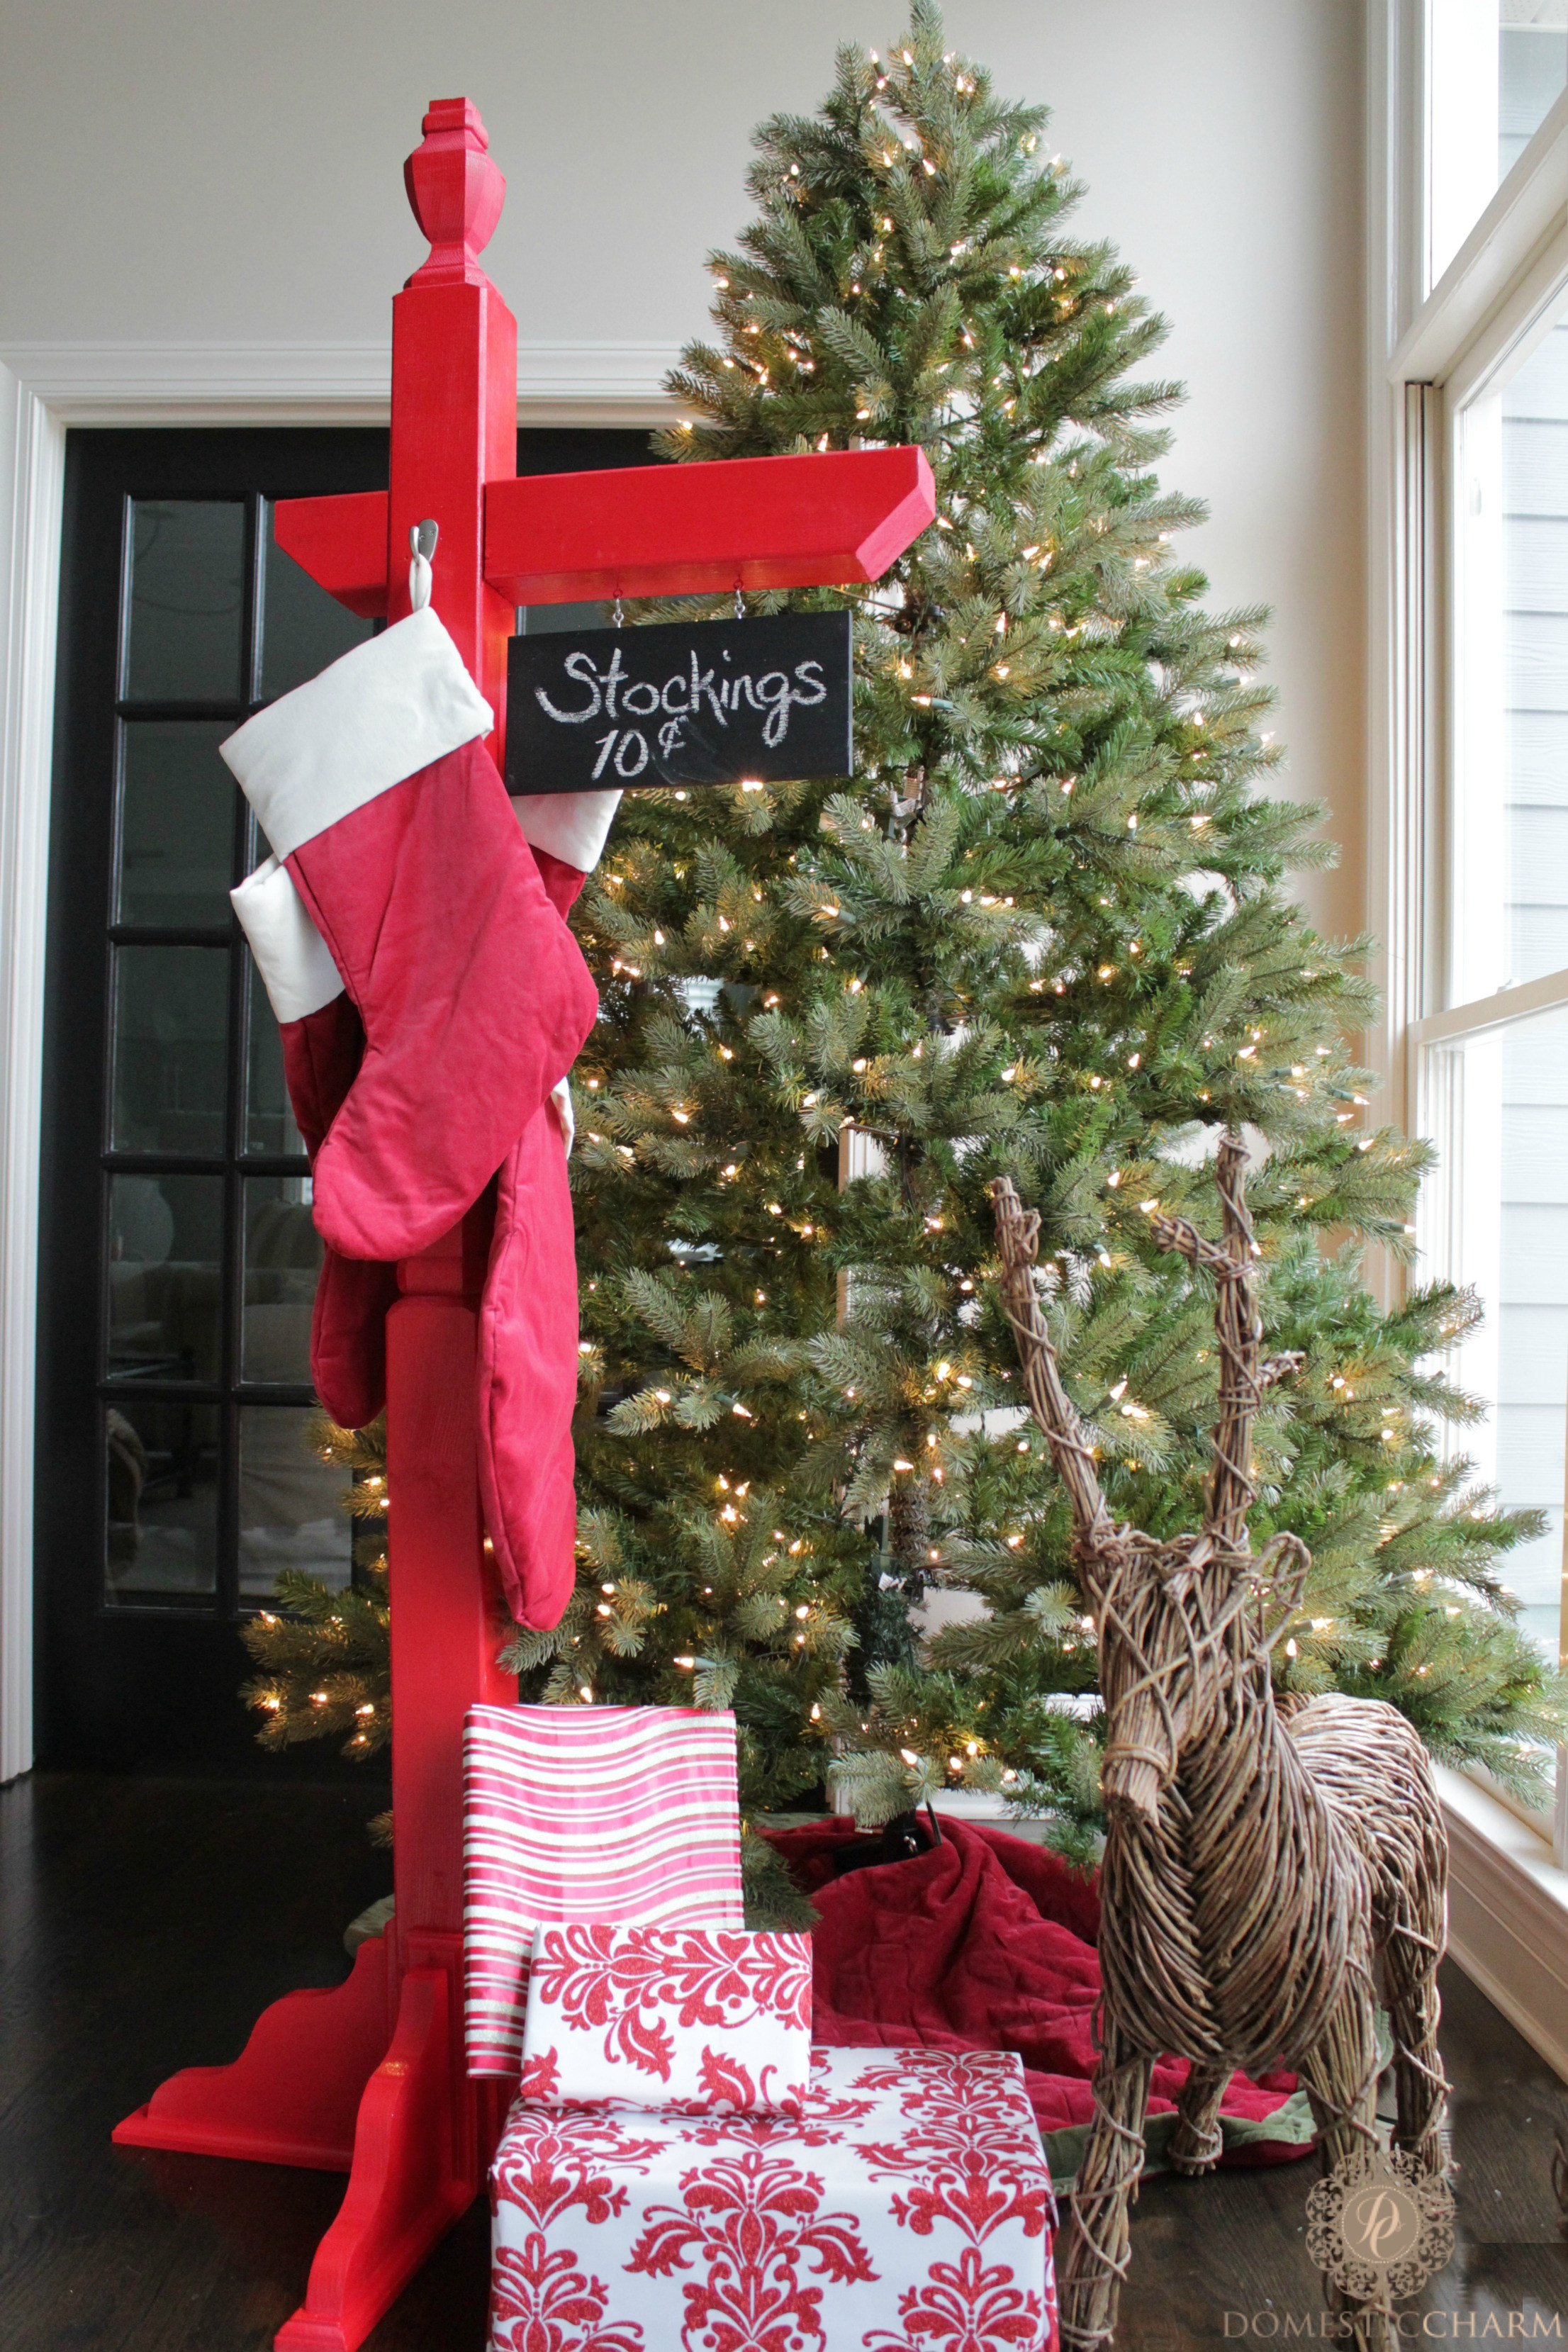 Floor Christmas Stocking Holder  DIY Stocking Holder with The Home Depot Domestic Charm